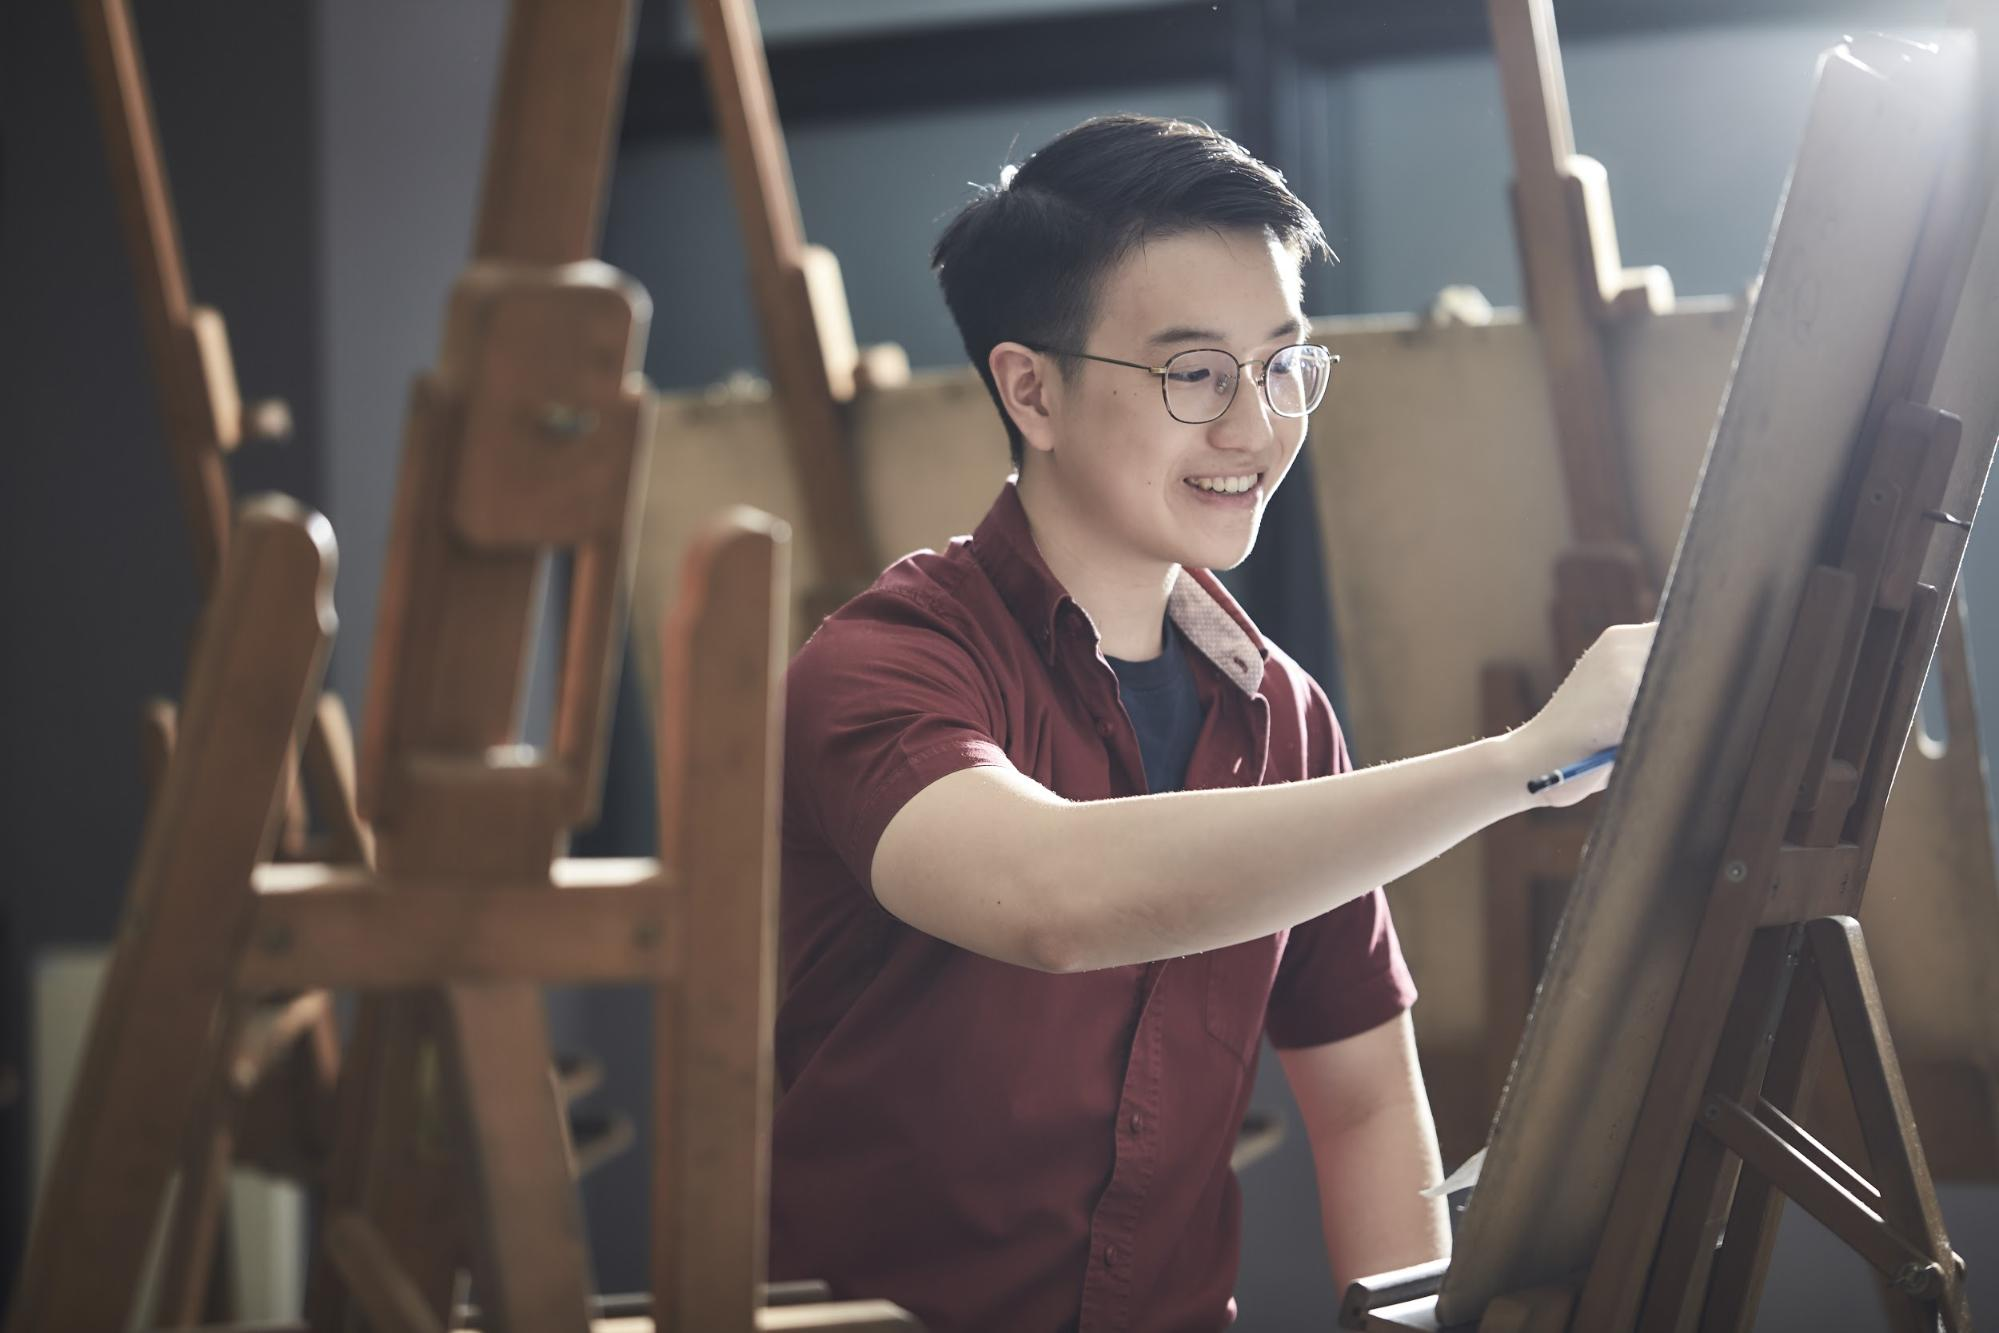 polytechnic to local university - sketching or drawing on easel stand at nanyang poly